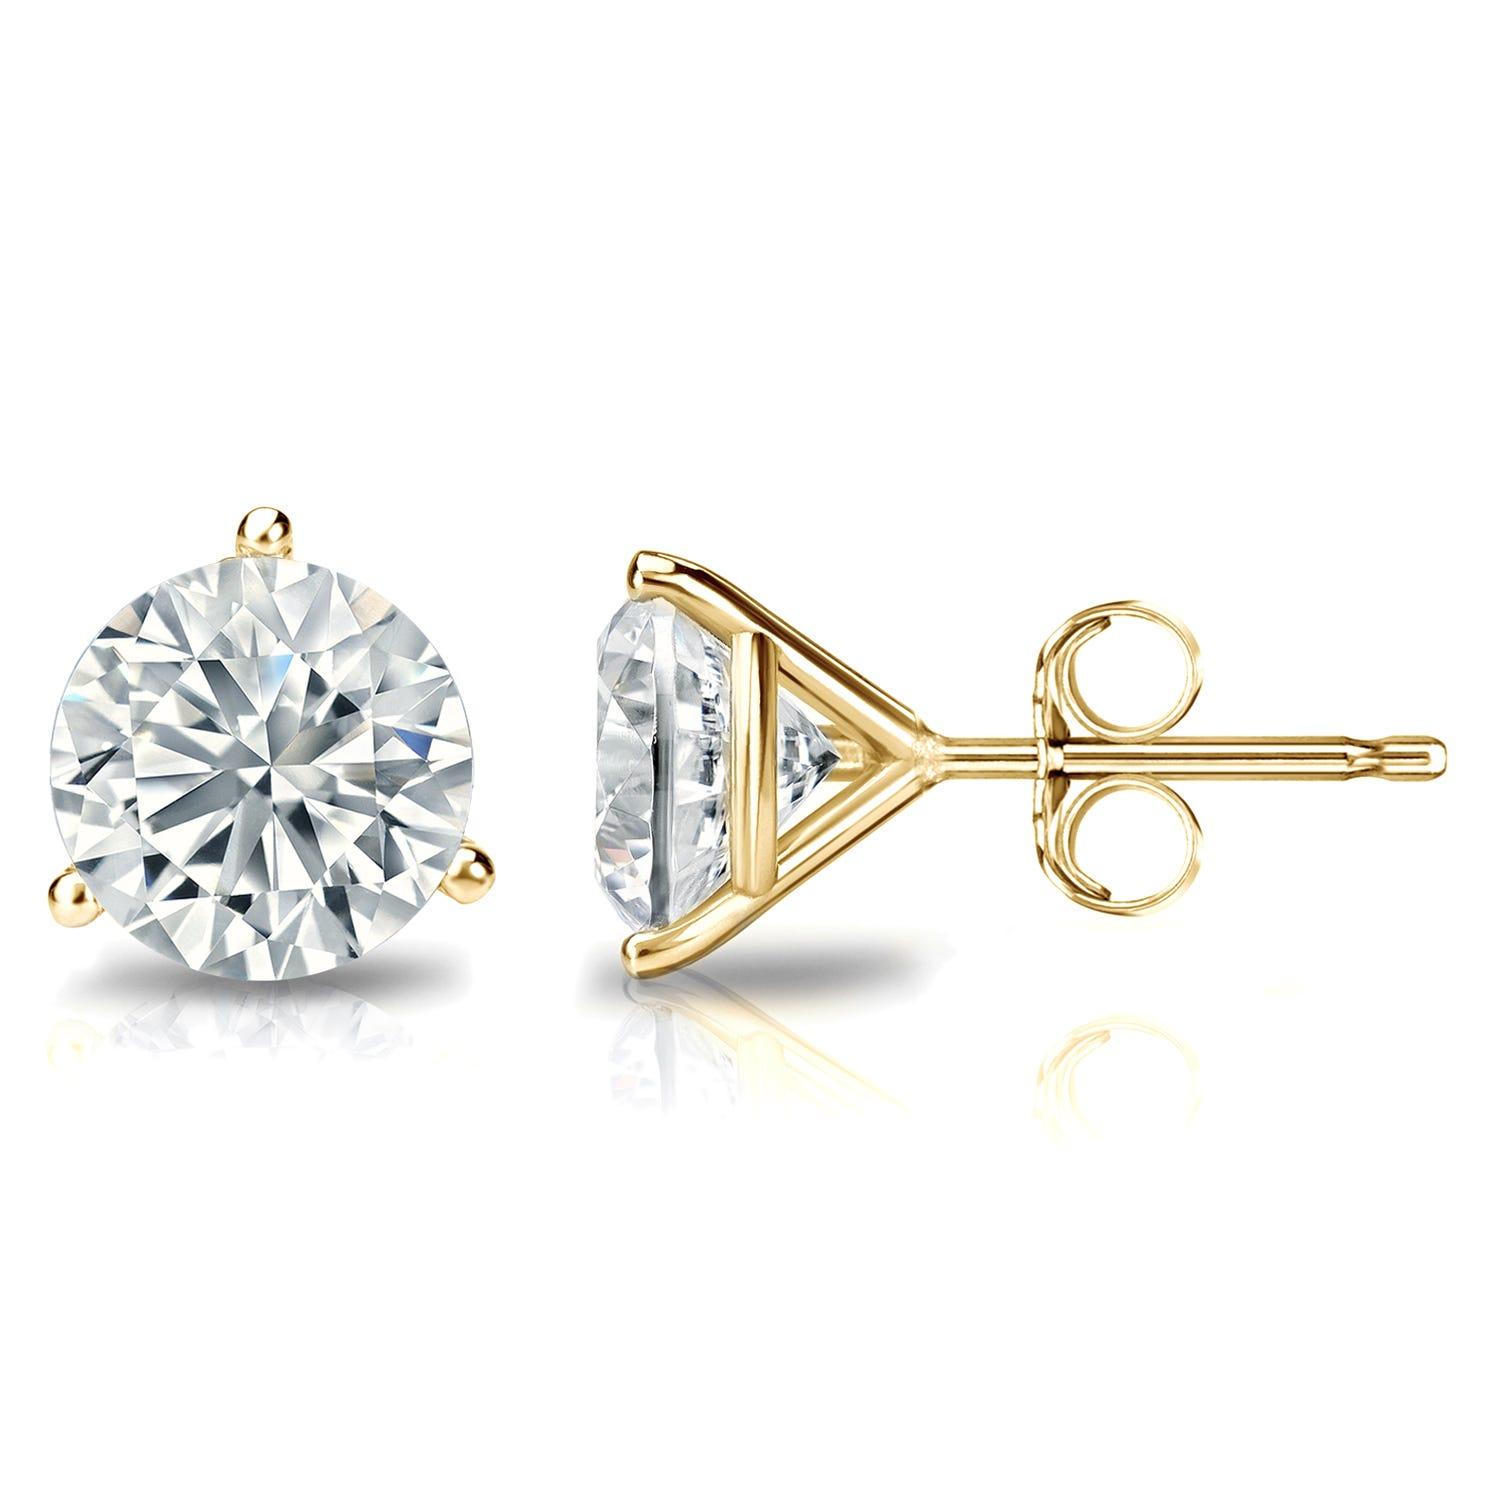 2 CTTW Round Diamond Solitaire Stud Earrings IJ VS2 in 18K Yellow Gold IGI Certified 3-Prong Setting